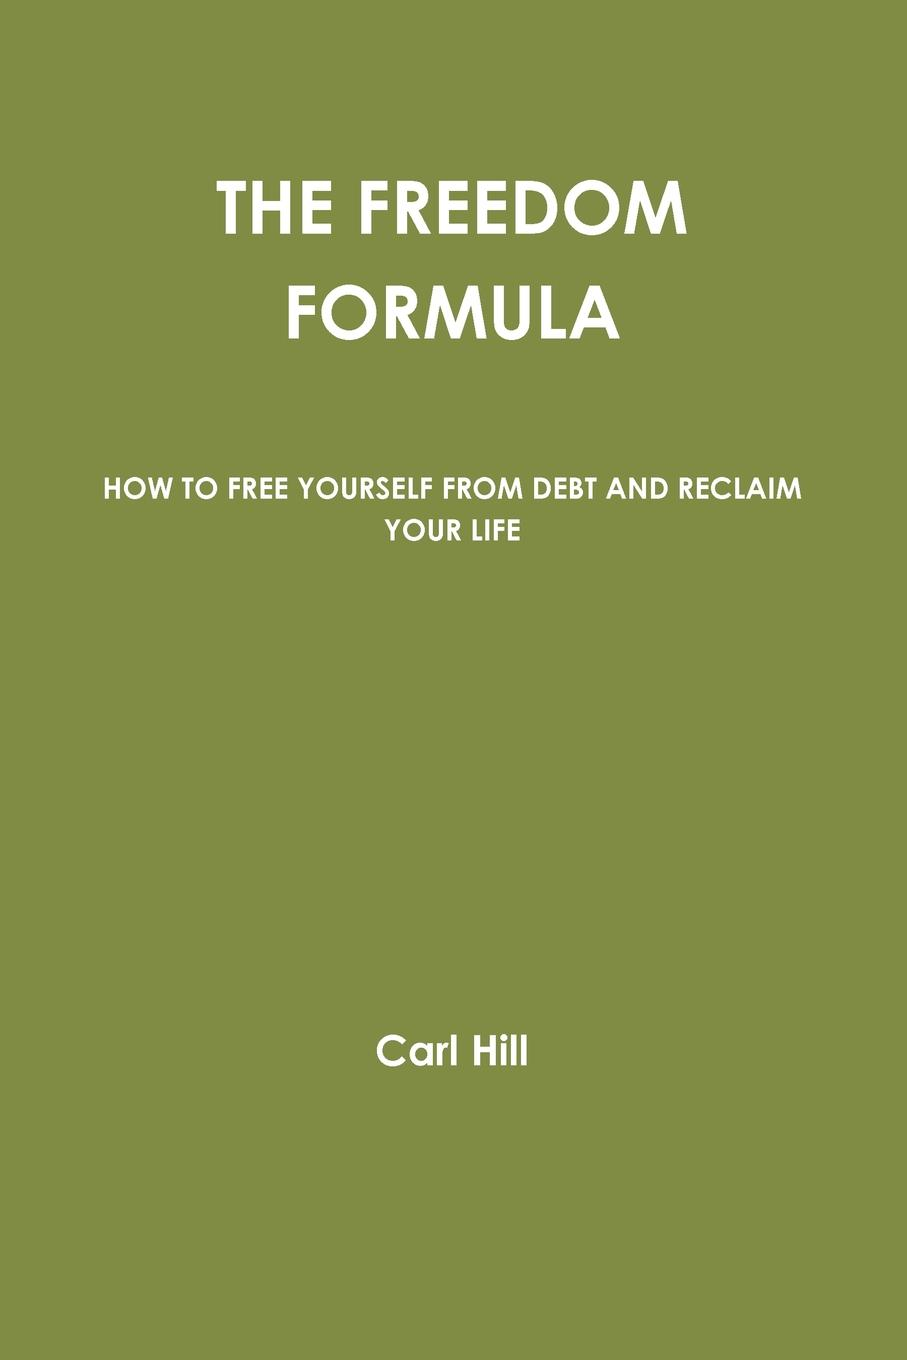 Carl Hill The Freedom Formula kaylee berry lifestyle blog planner journal lifestyle blogging content planner never run out of things to blog about again